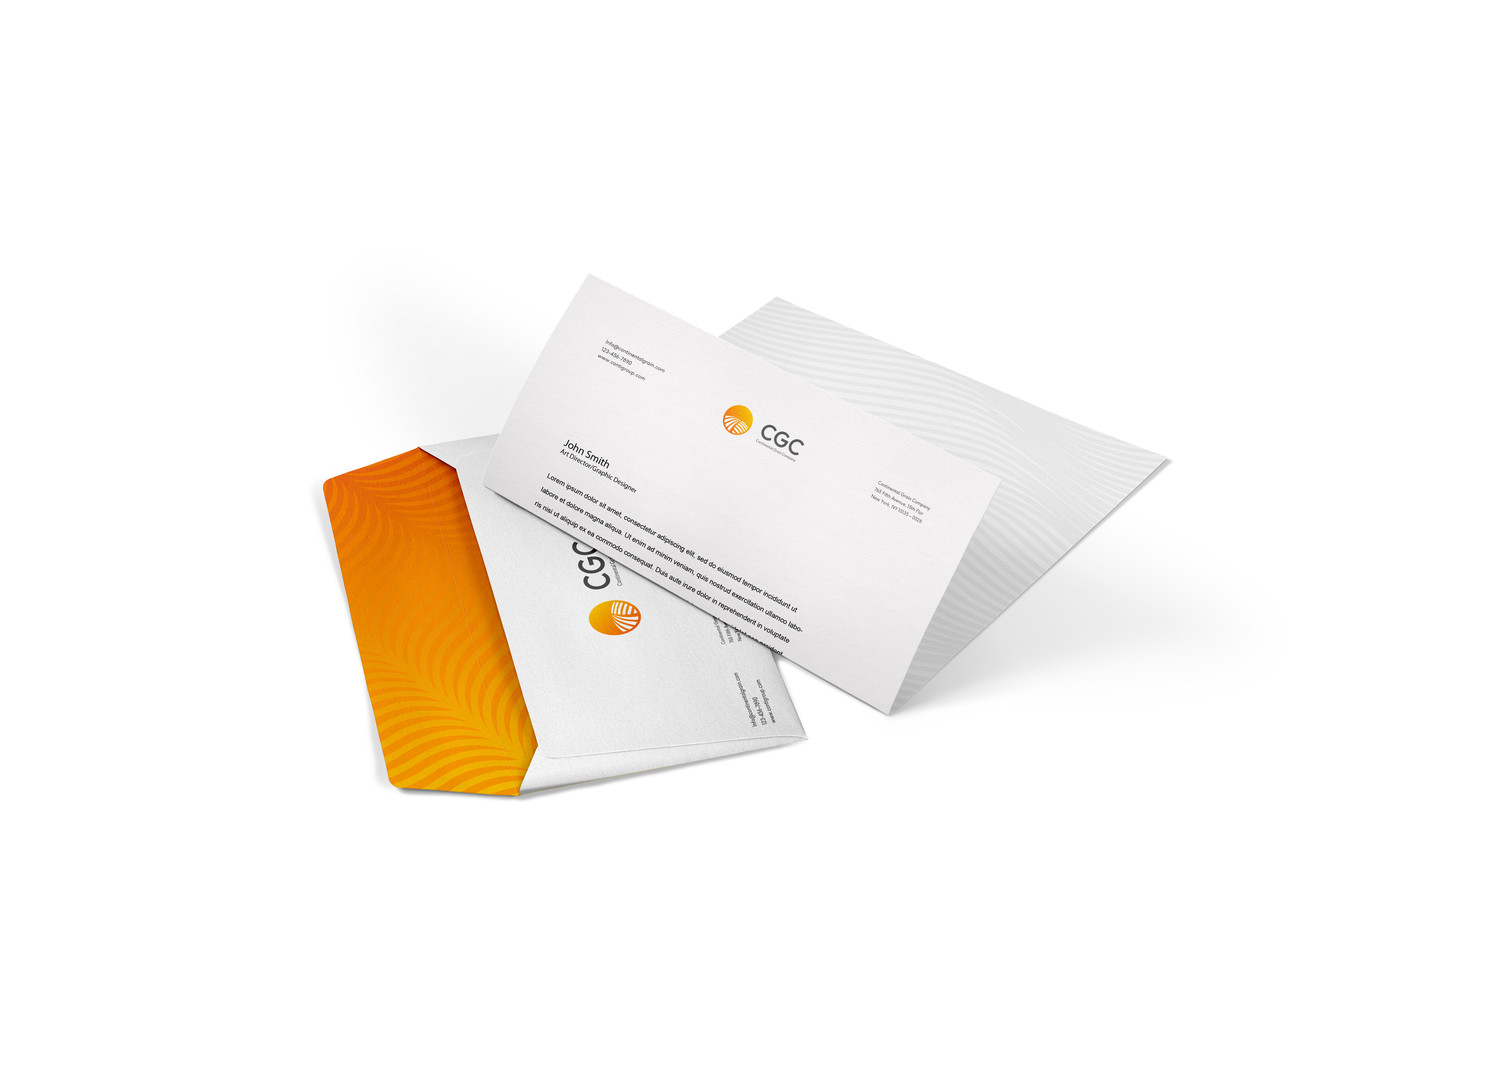 Envelope-with-Letter-Brand-Mockup_4 copy